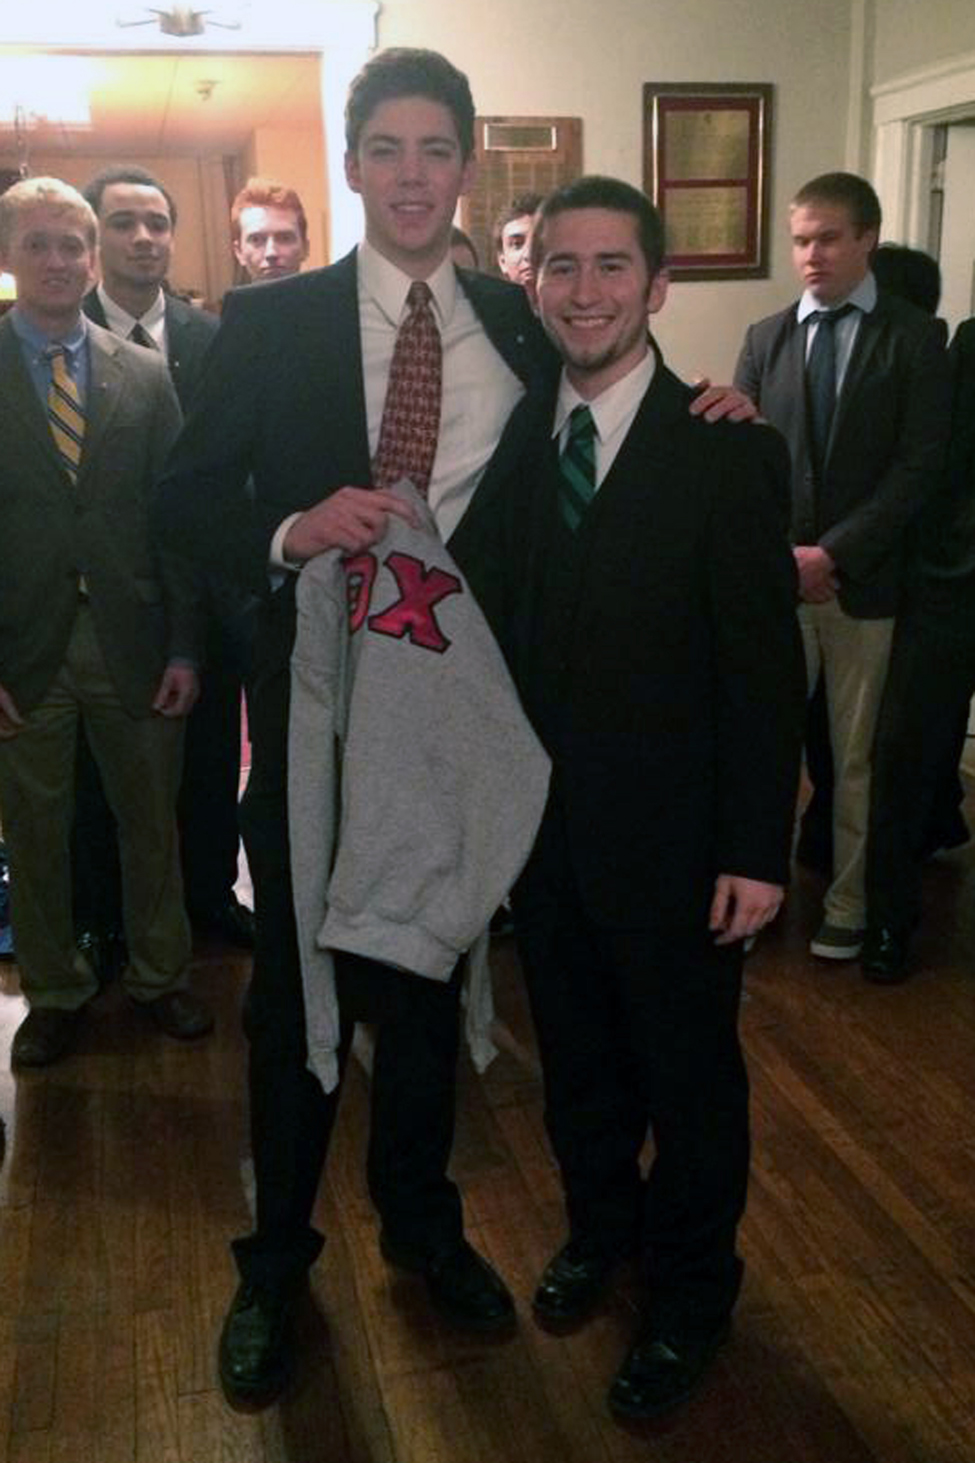 CJ Winand and Sam Kulp - Spring 2014 Initiation Night - April 2014